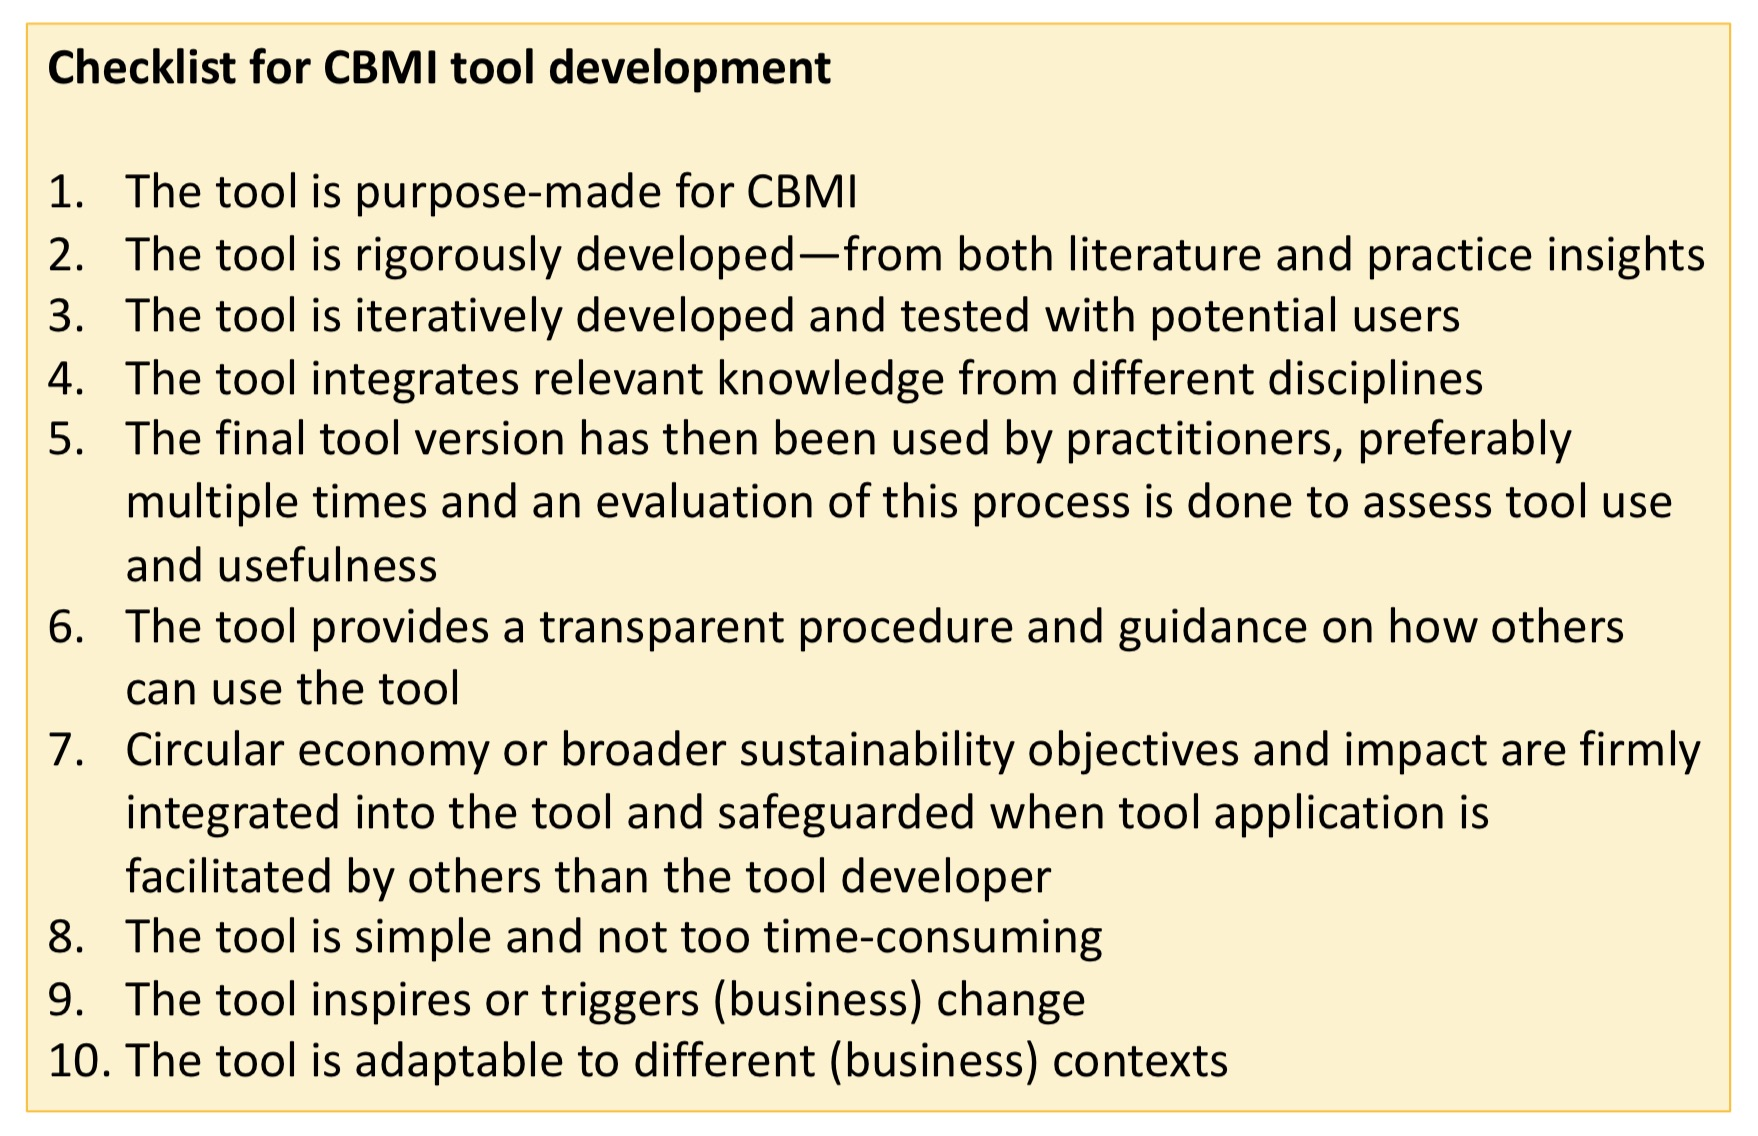 Checklist for tool CBMI development